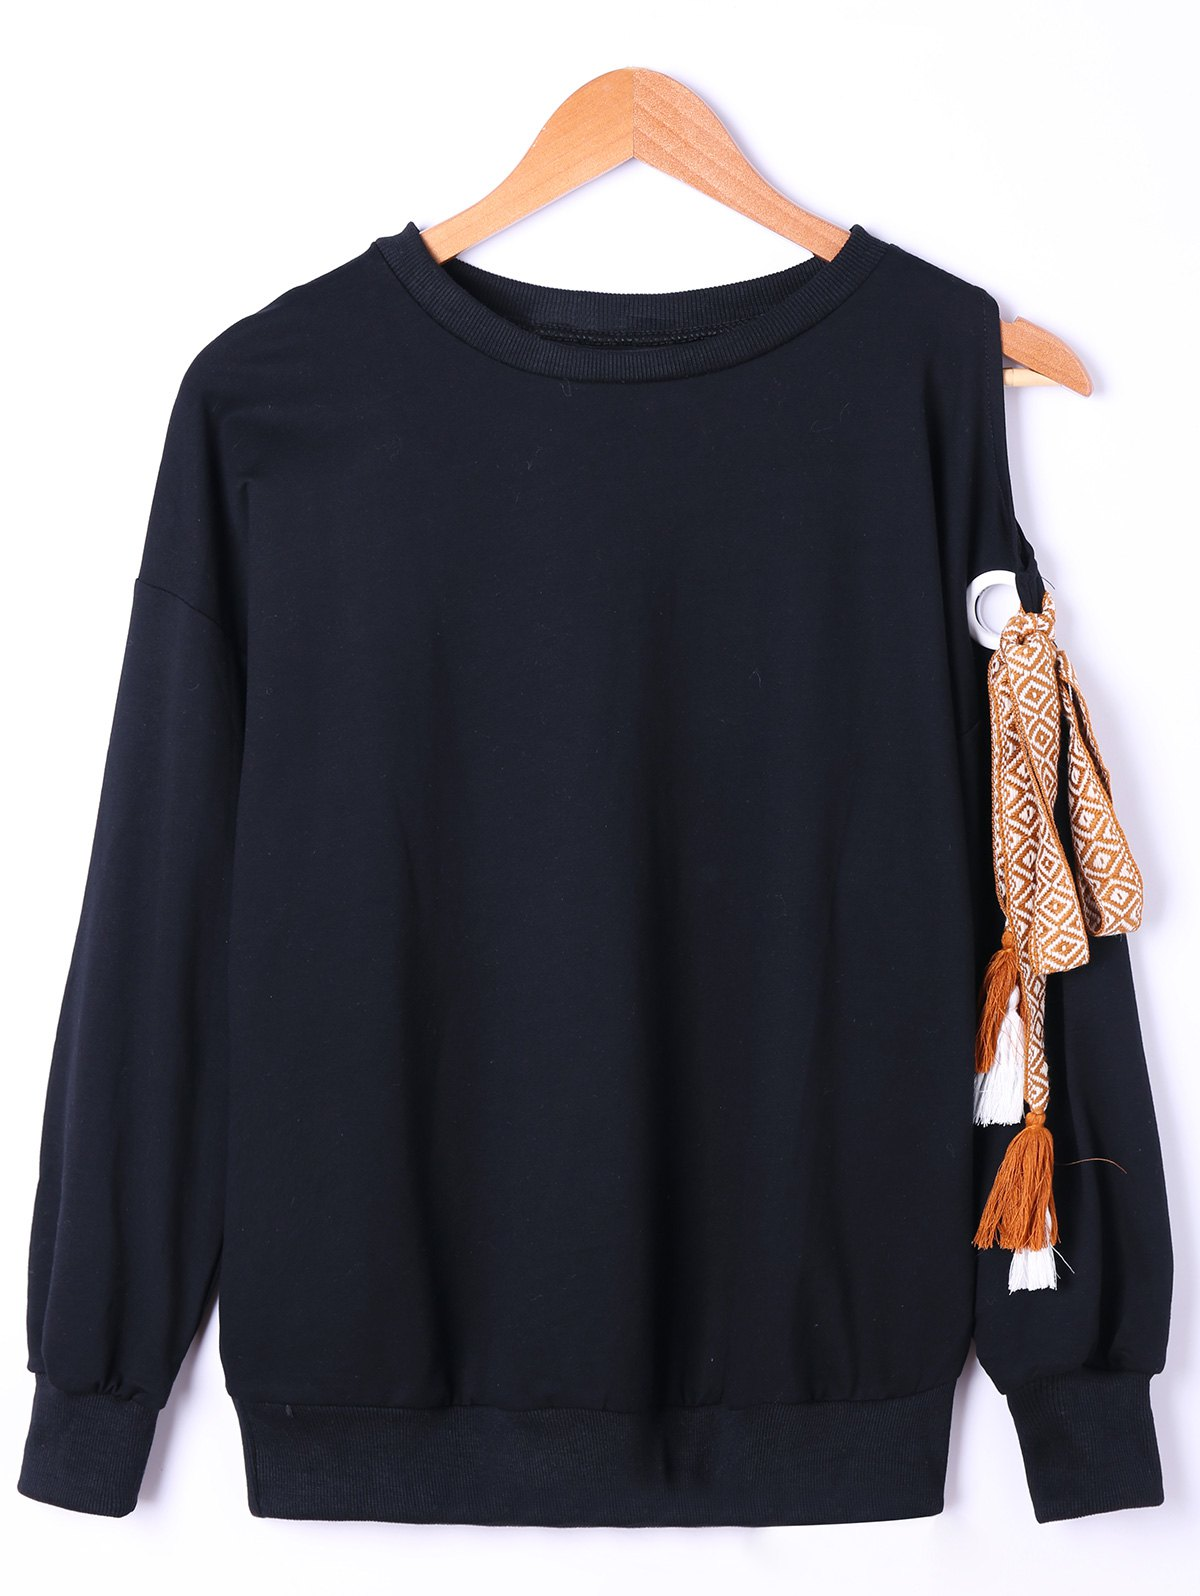 Side Bowknot Embellished Plus Size Sweatshirts - Noir 3XL